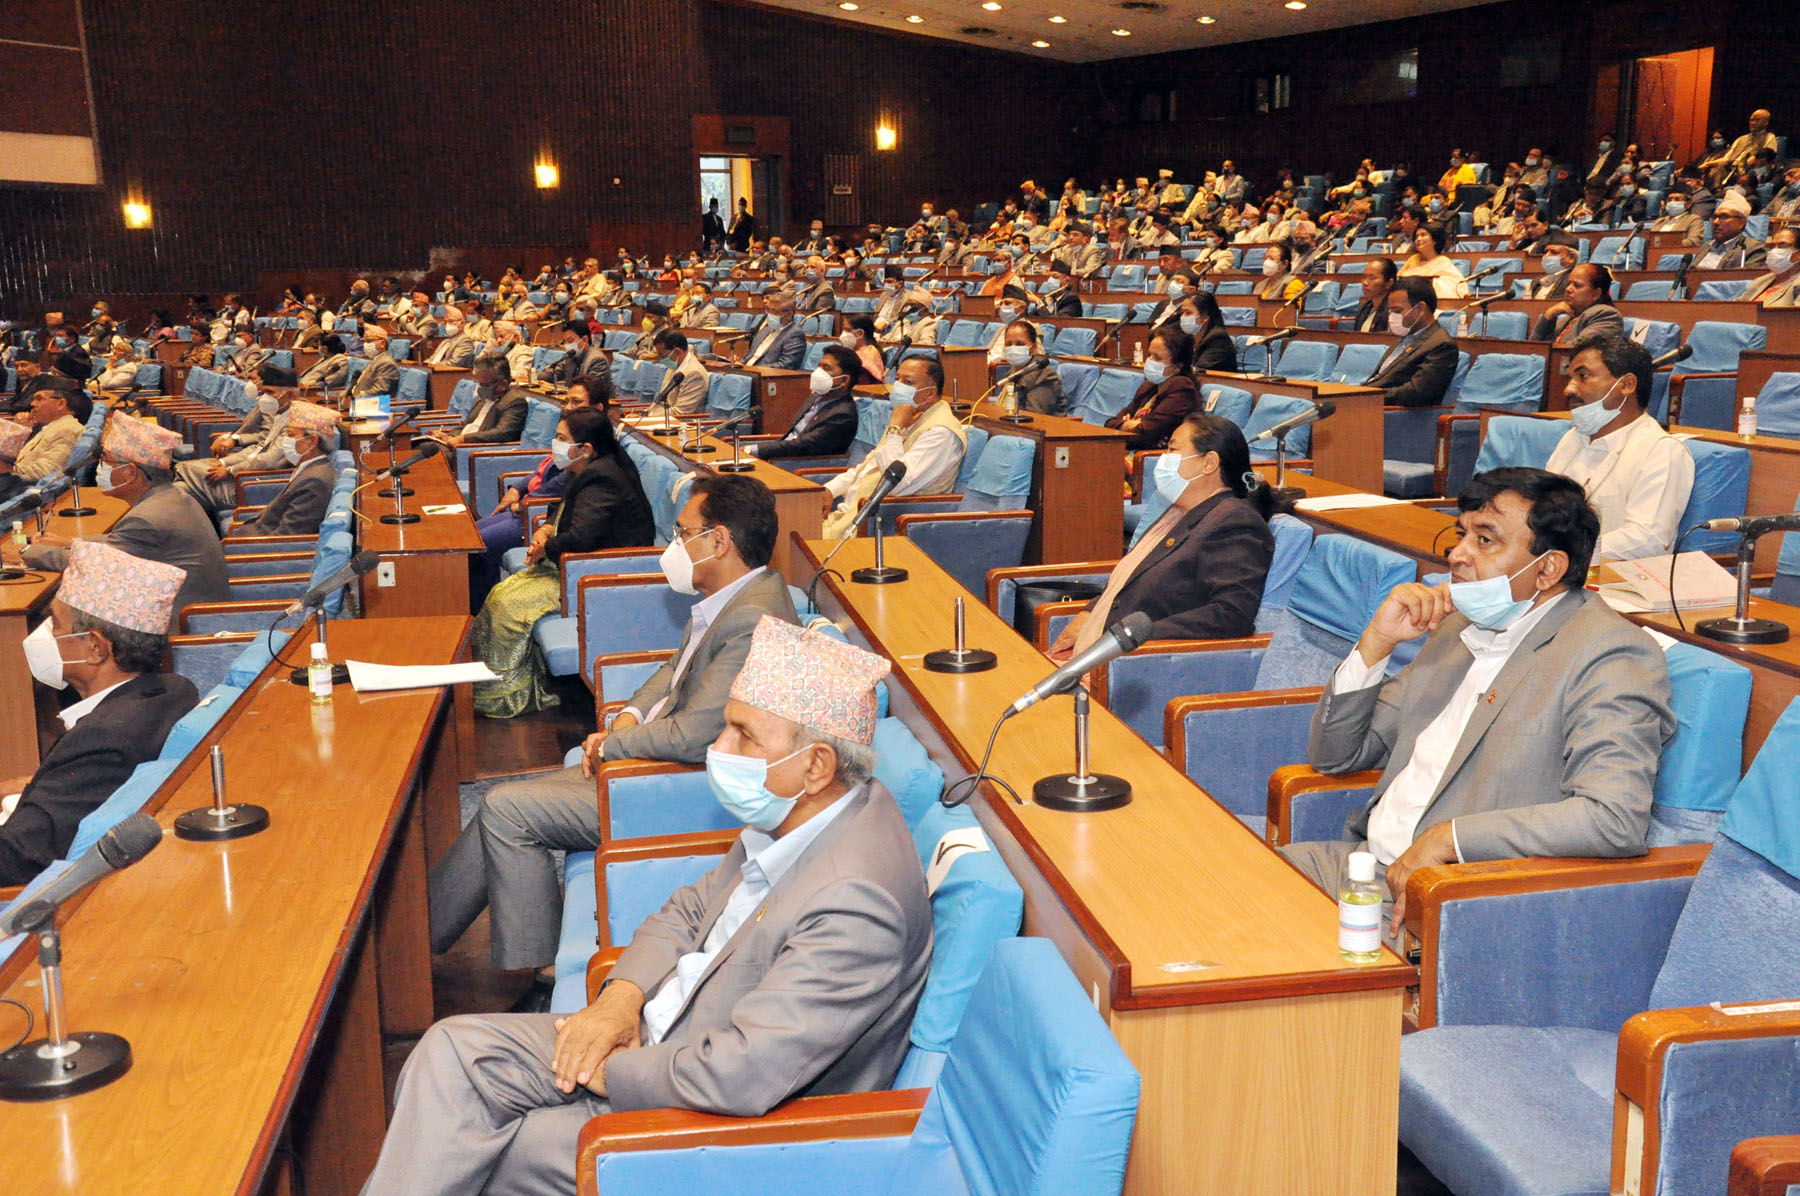 Ministers and parliamentarians take part in the in the joint session of the House of Representatives and National Assembly where Finance Minister Yubaraj Khatiwada presented a budget of Rs 1,474.64 billion for the Fiscal Year 2020/2021, in New Baneshwor, Kathmandu, on Thursday, May 28, 2020. Photo: RSS